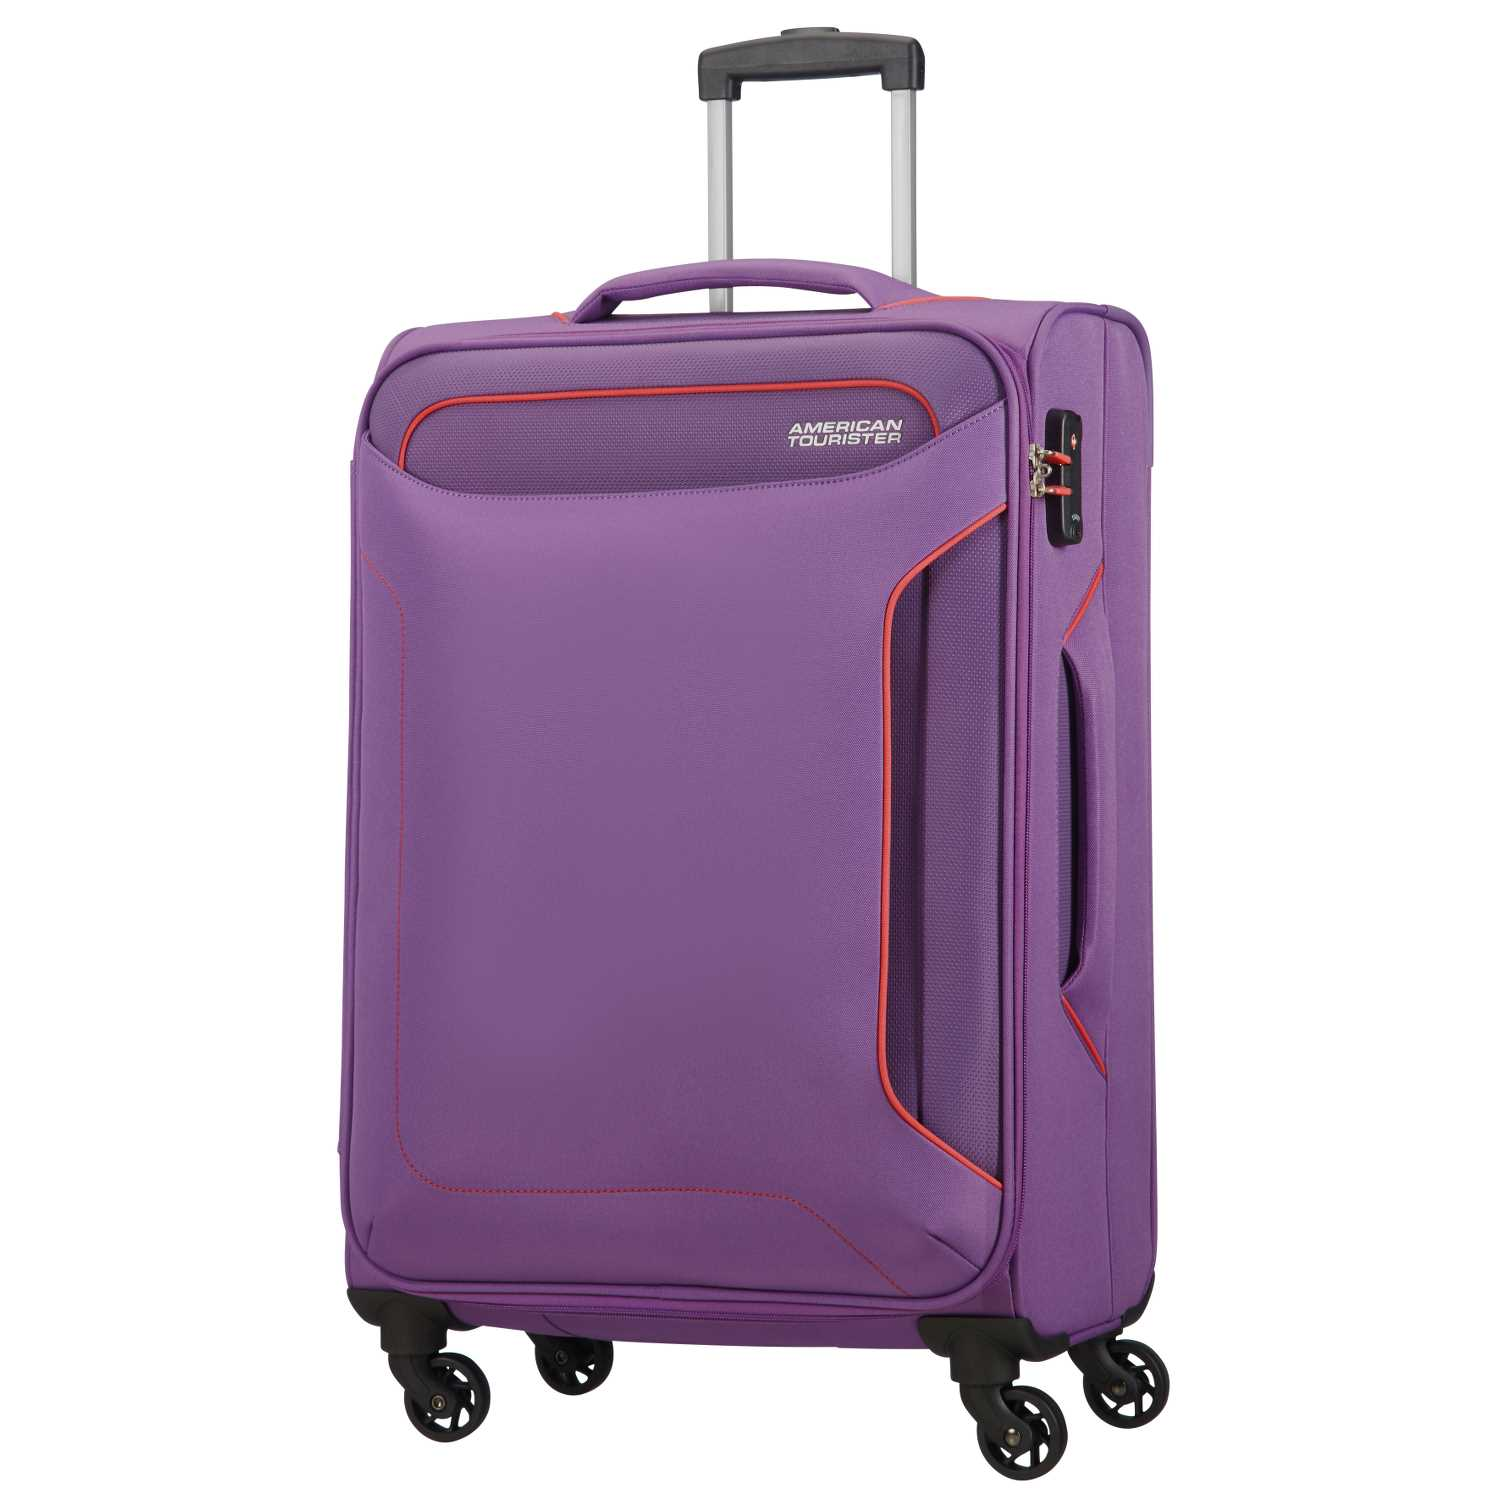 1a0b550a81 AMERICAN TOURISTER – Βαλίτσα μεσαίου μεγέθους HOLIDAY HEAT SPINNER 67 24 μοβ